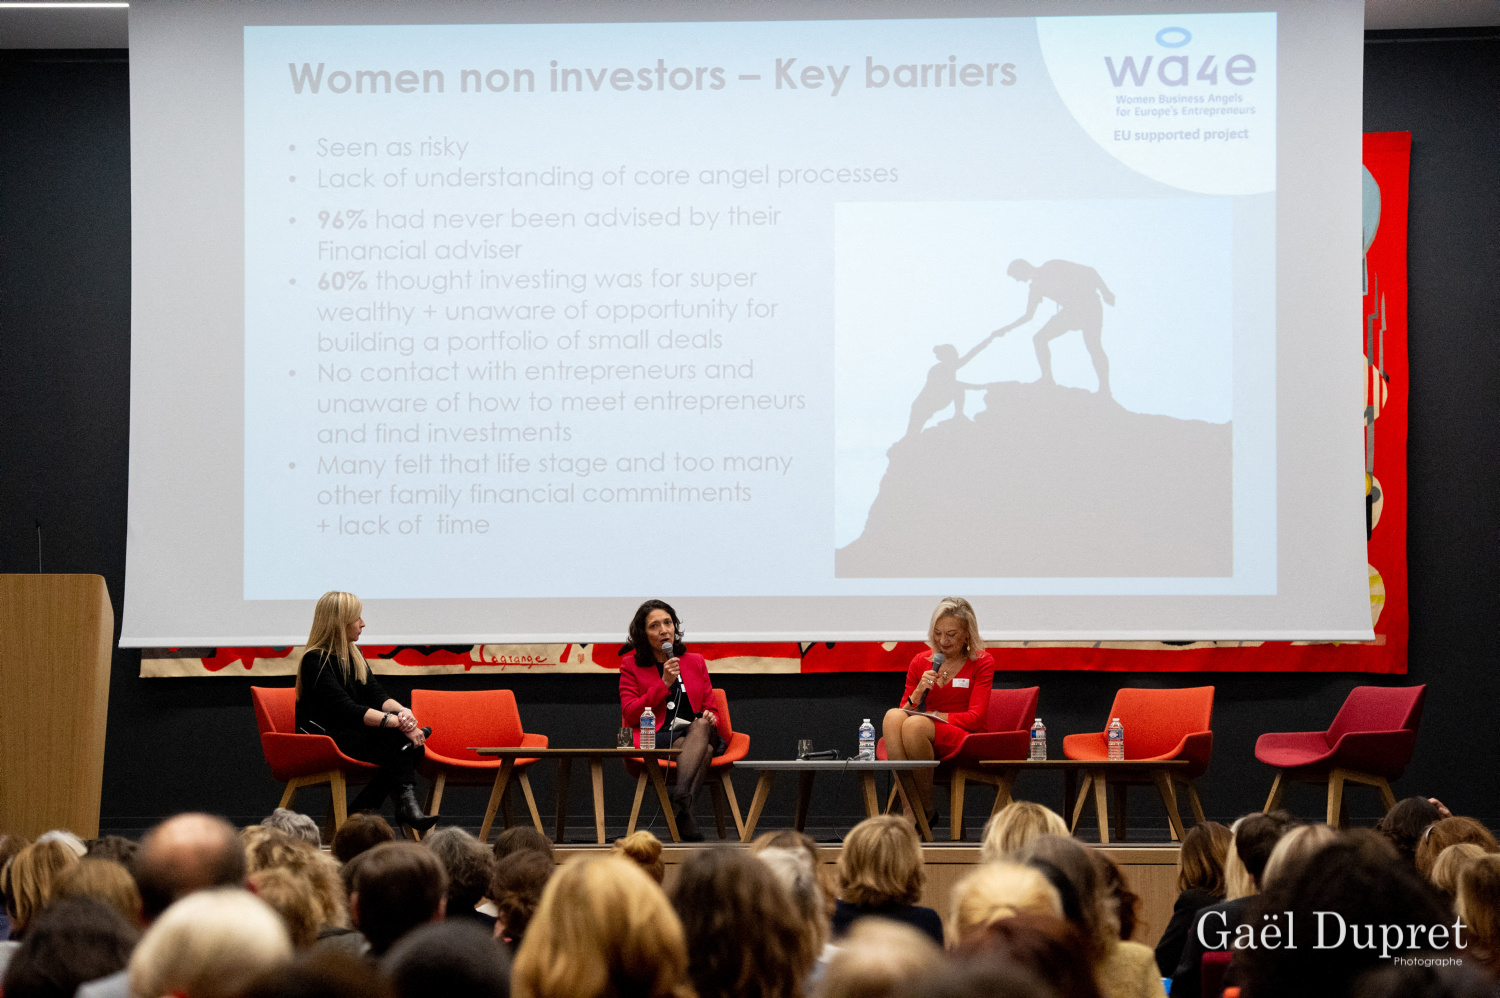 ©Gaël Dupret, France, Paris le 2018-11-15 : 2ème édition des WINDAY Paris par FBA - Femmes Business Angels. Photo : Présentation de l'étude WA4E :  Isabelle GOUNIN-LEVY, Journaliste économique sur LCI,  Florence RICHARDSON, Co-Présidente de Femmes Business Angels et  Jenny TOOTH, CEO de UK Business Angels Association.   Presentation of the WA4E study: Isabelle GOUNIN-LEVY, Economic Journalist on LCI,  Florence RICHARDSON, Co-President of Women Business Angels and Jenny TOOTH, CEO of UK Business Angels Association.